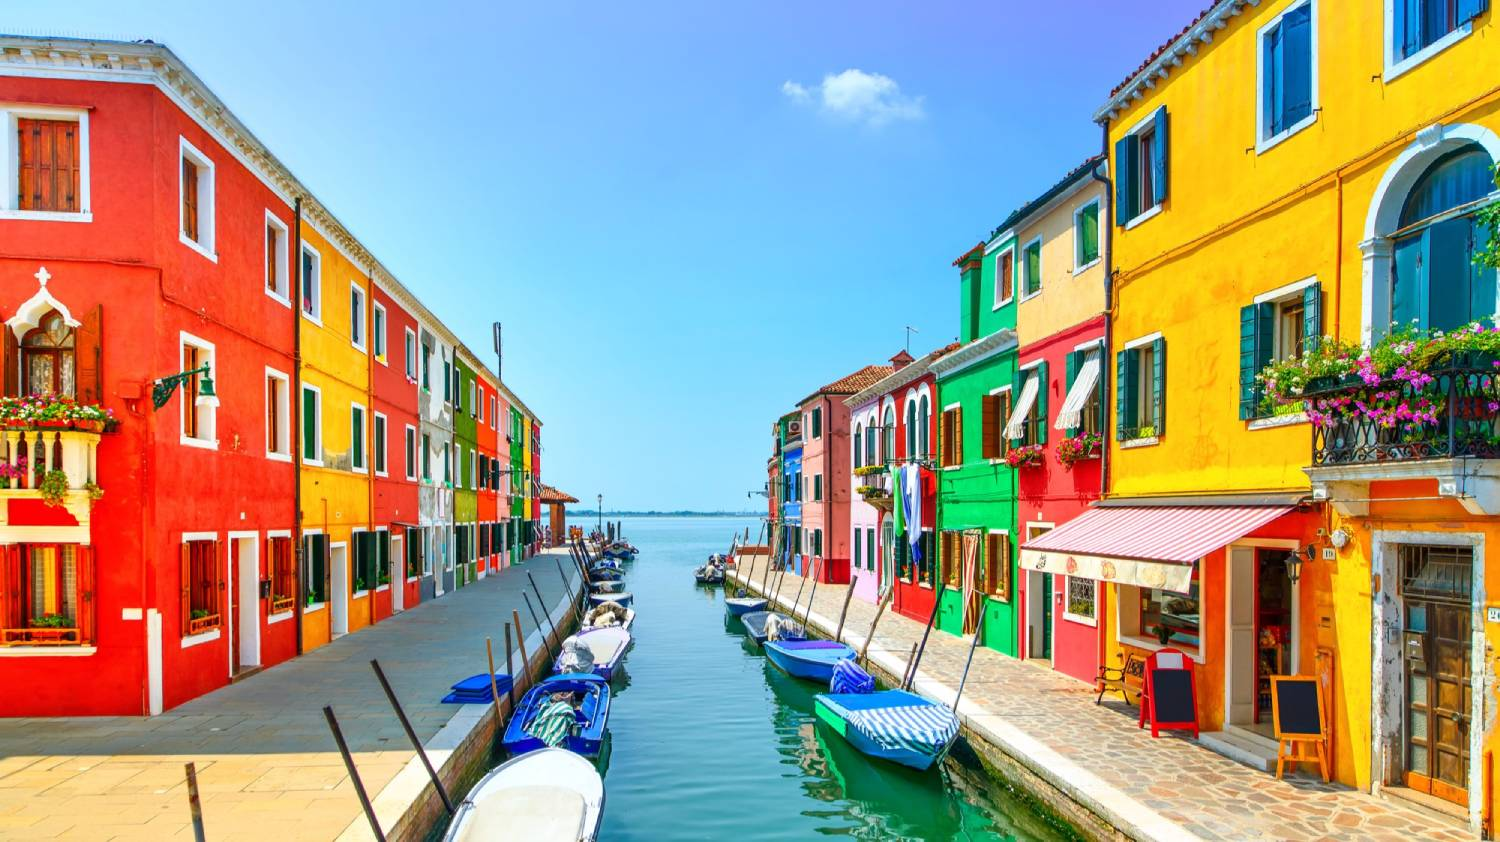 Venice Islands - Things To Do In Venice